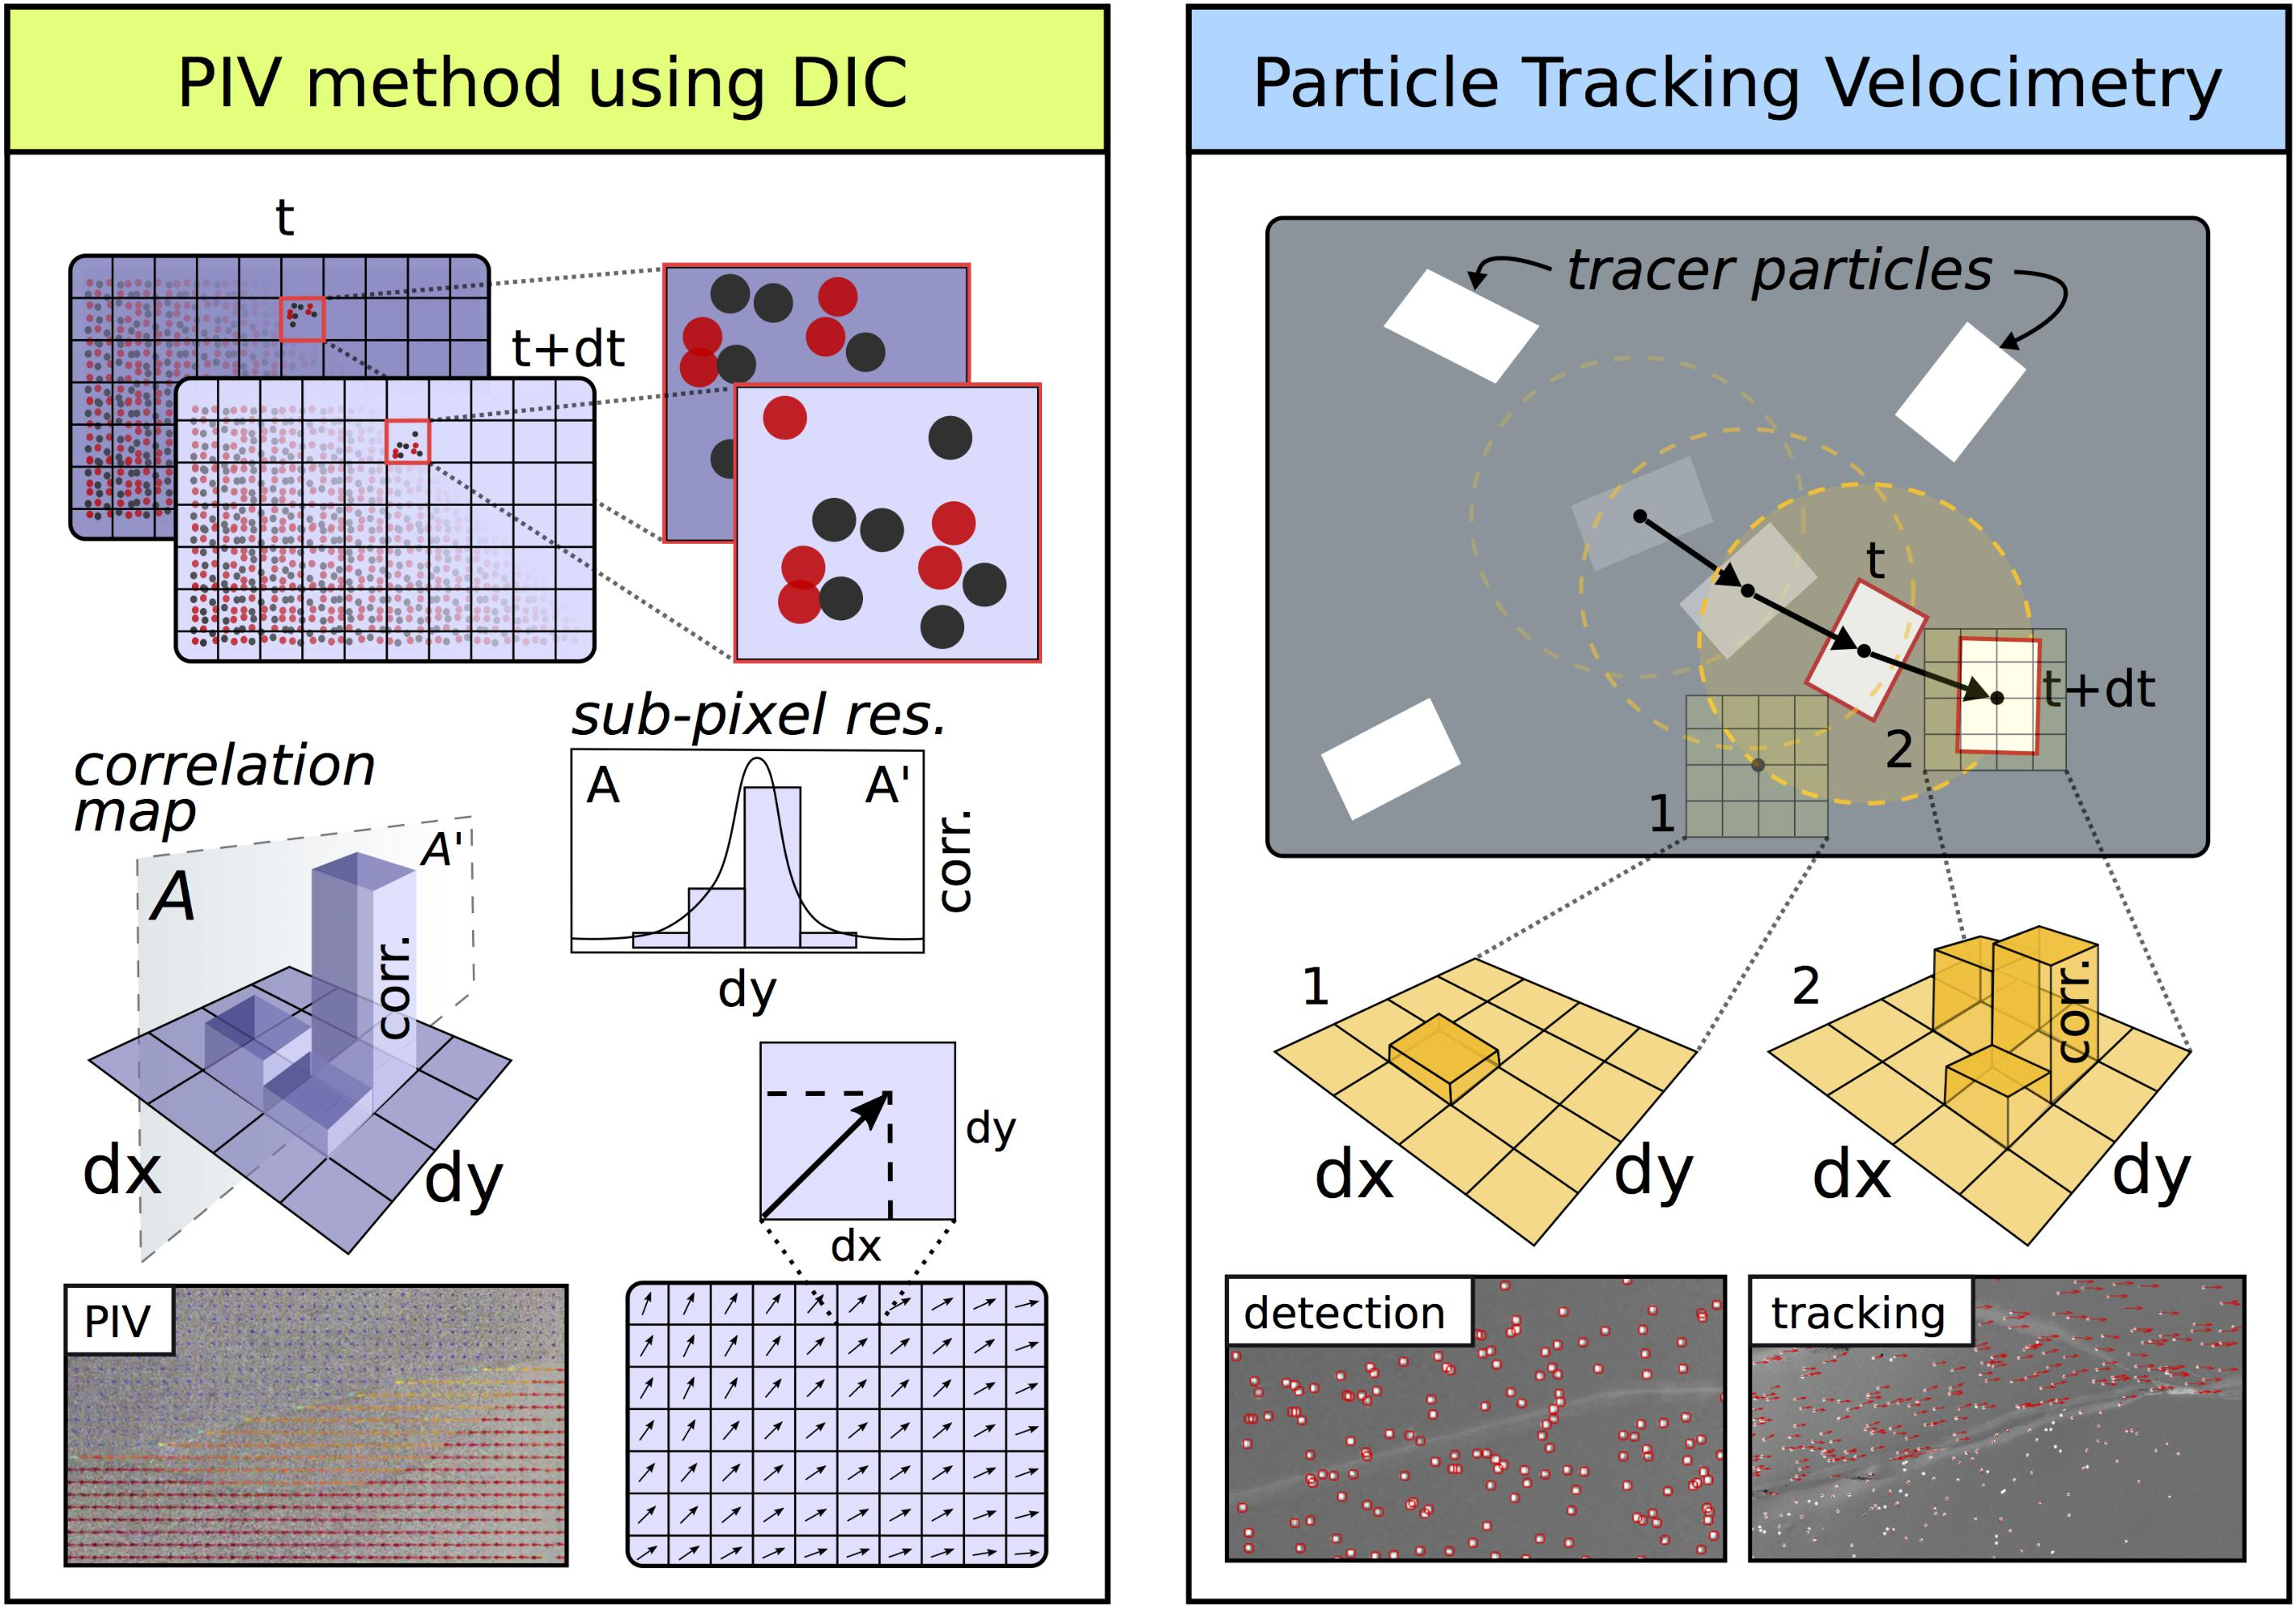 Frontiers | Stereovision Combined With Particle Tracking